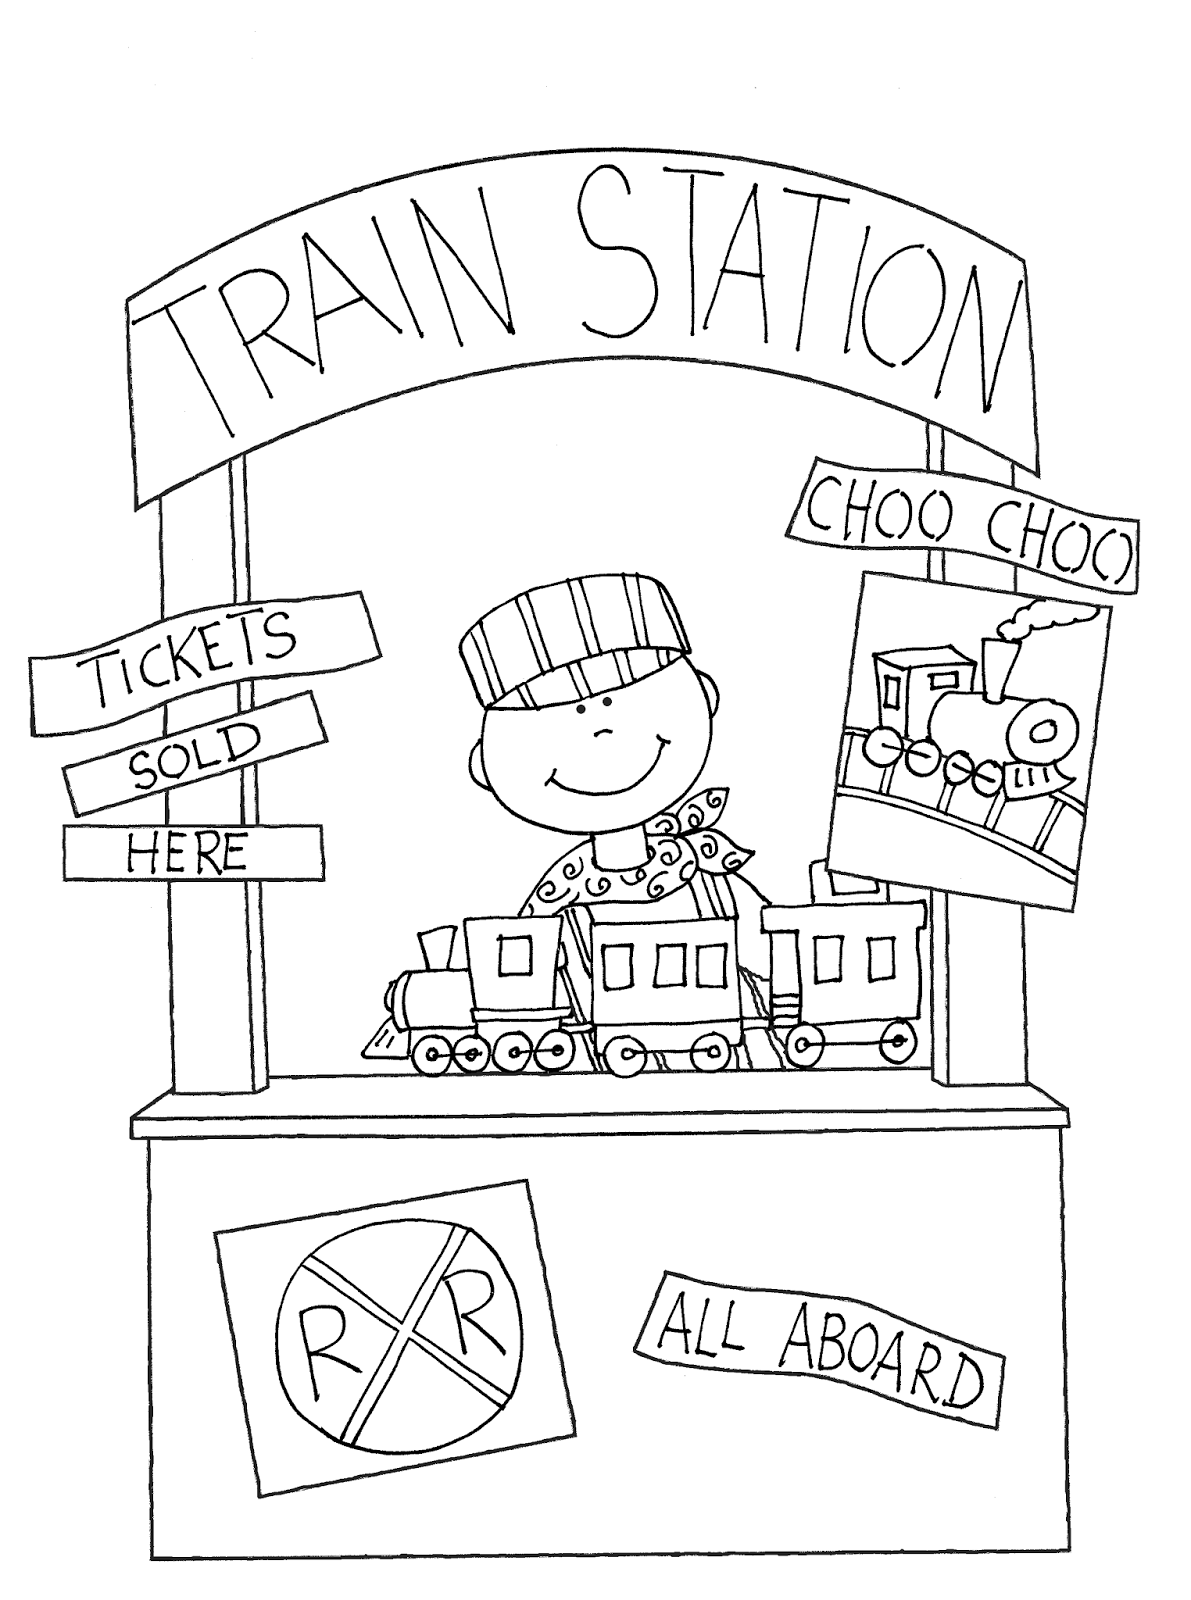 Bt Using The Power Of Communication To Make A Better World Train Station Digi Stamps Train